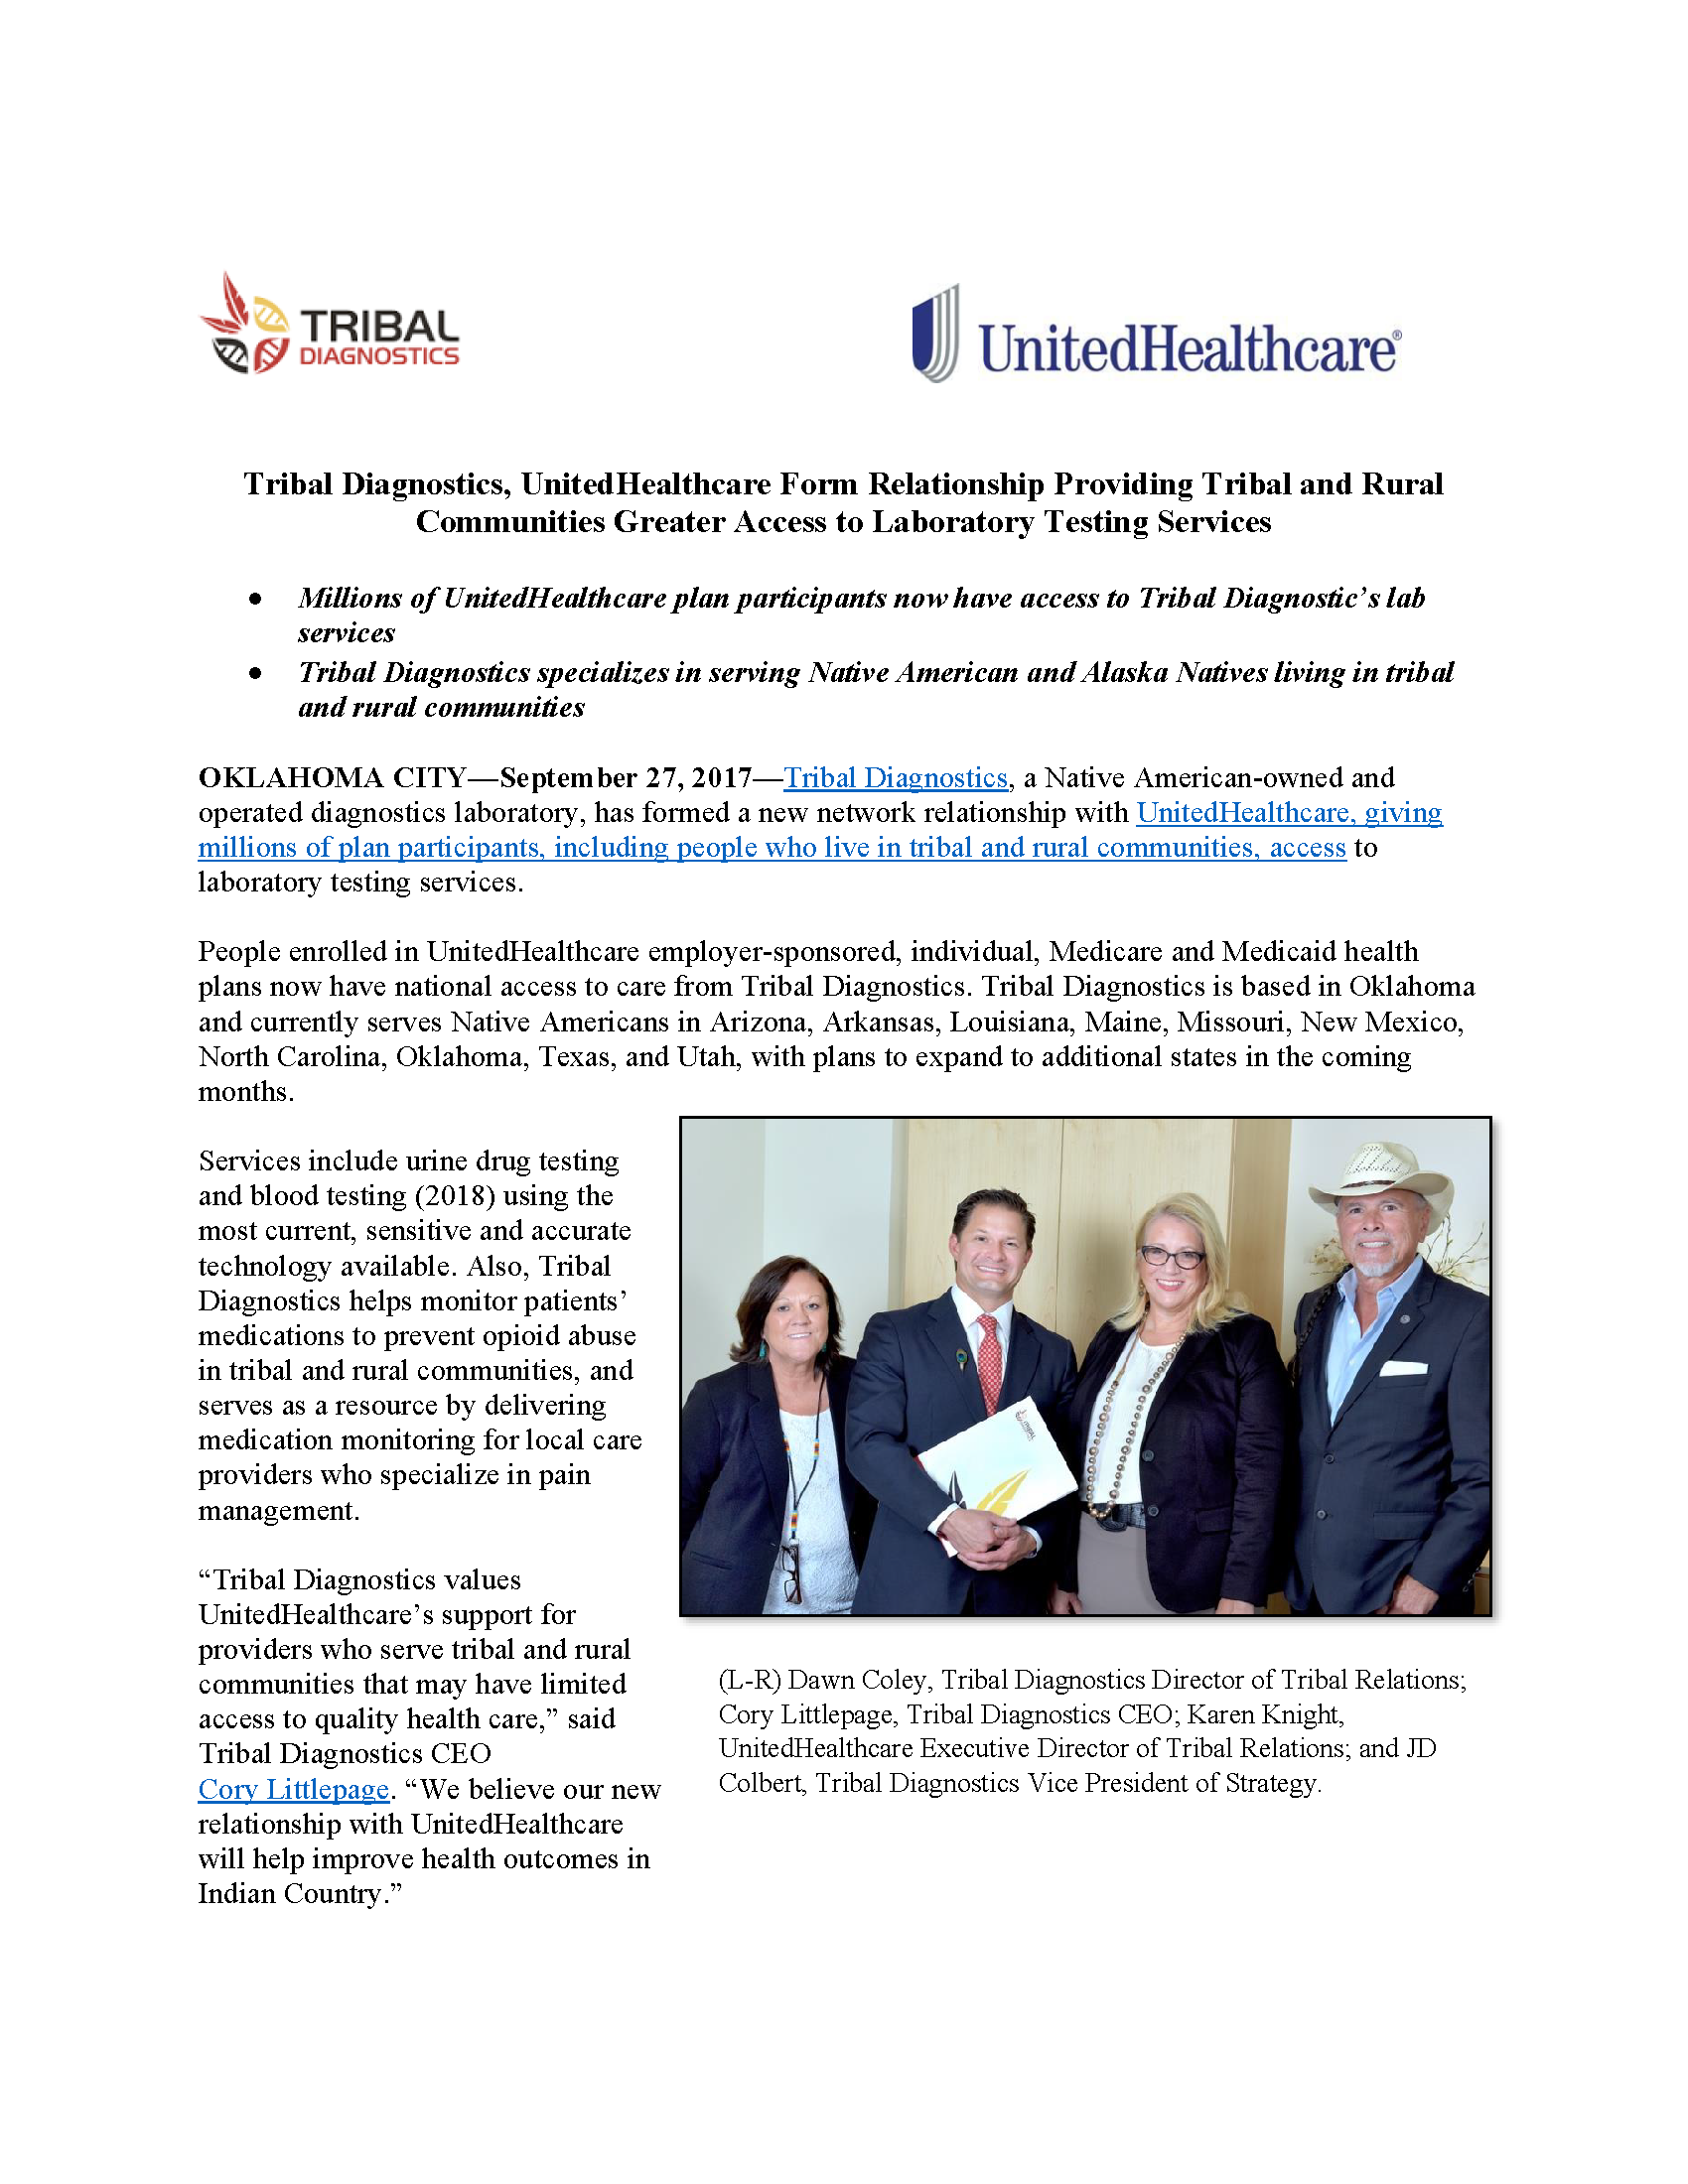 Press-Release_TD-UHC-Partnership_09-27-17_FINAL_w-photo_Page_1.png